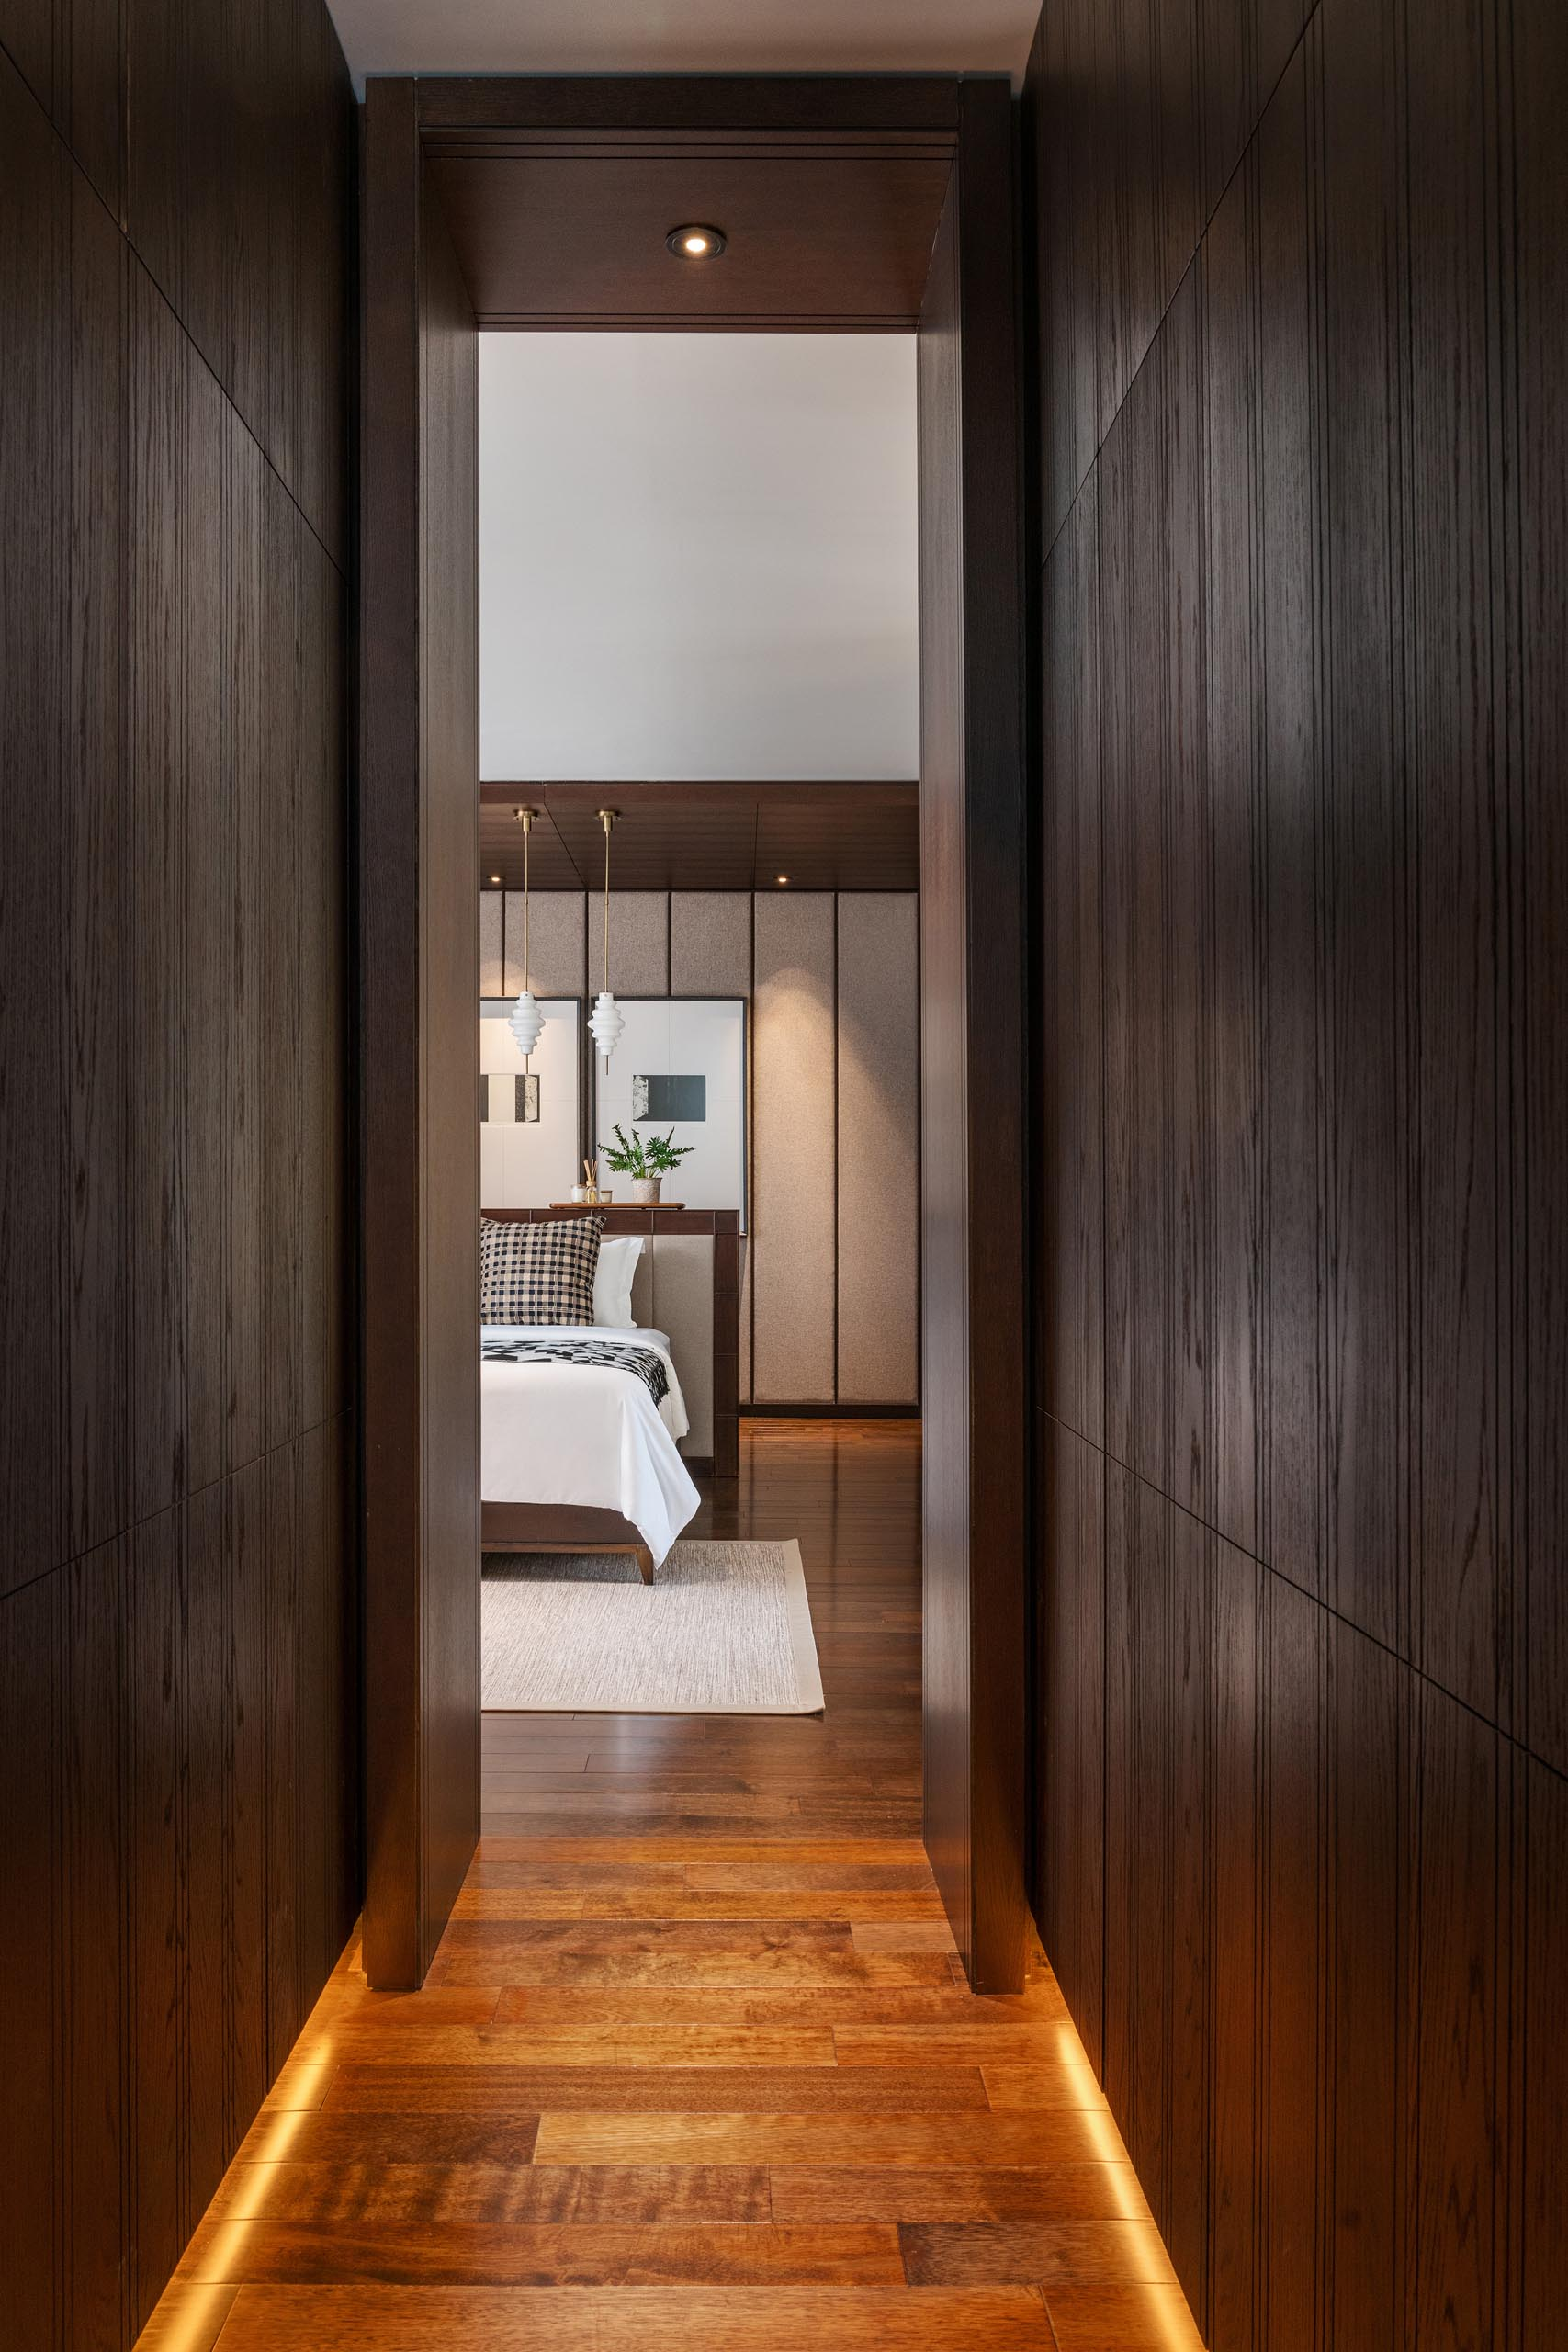 A hallway lined with dark wood cabinets and hidden lighting provides access to the primary bedroom.